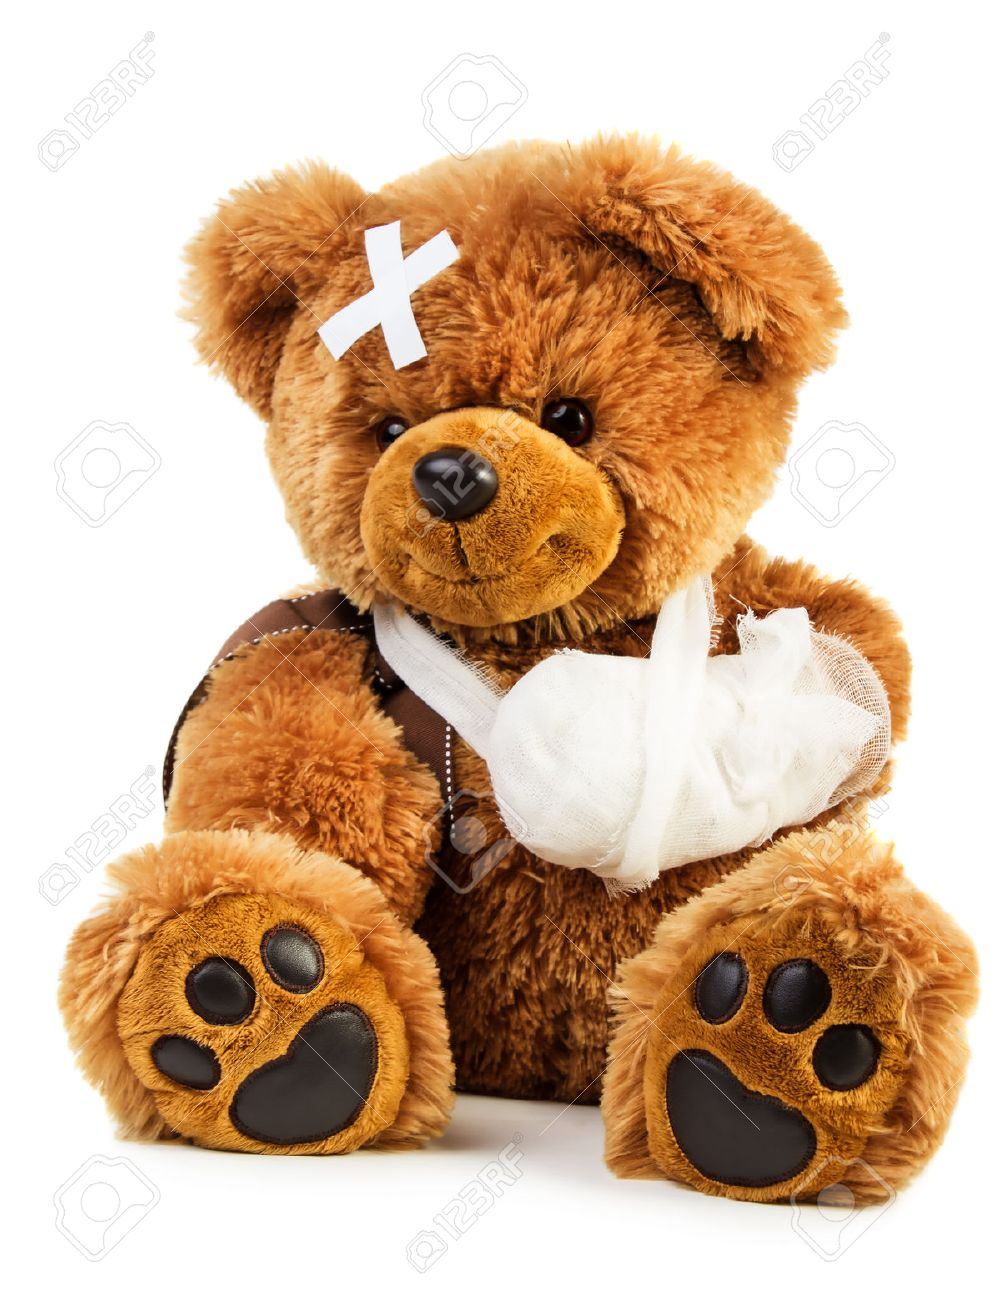 injured teddy bear images u0026 stock pictures royalty free injured